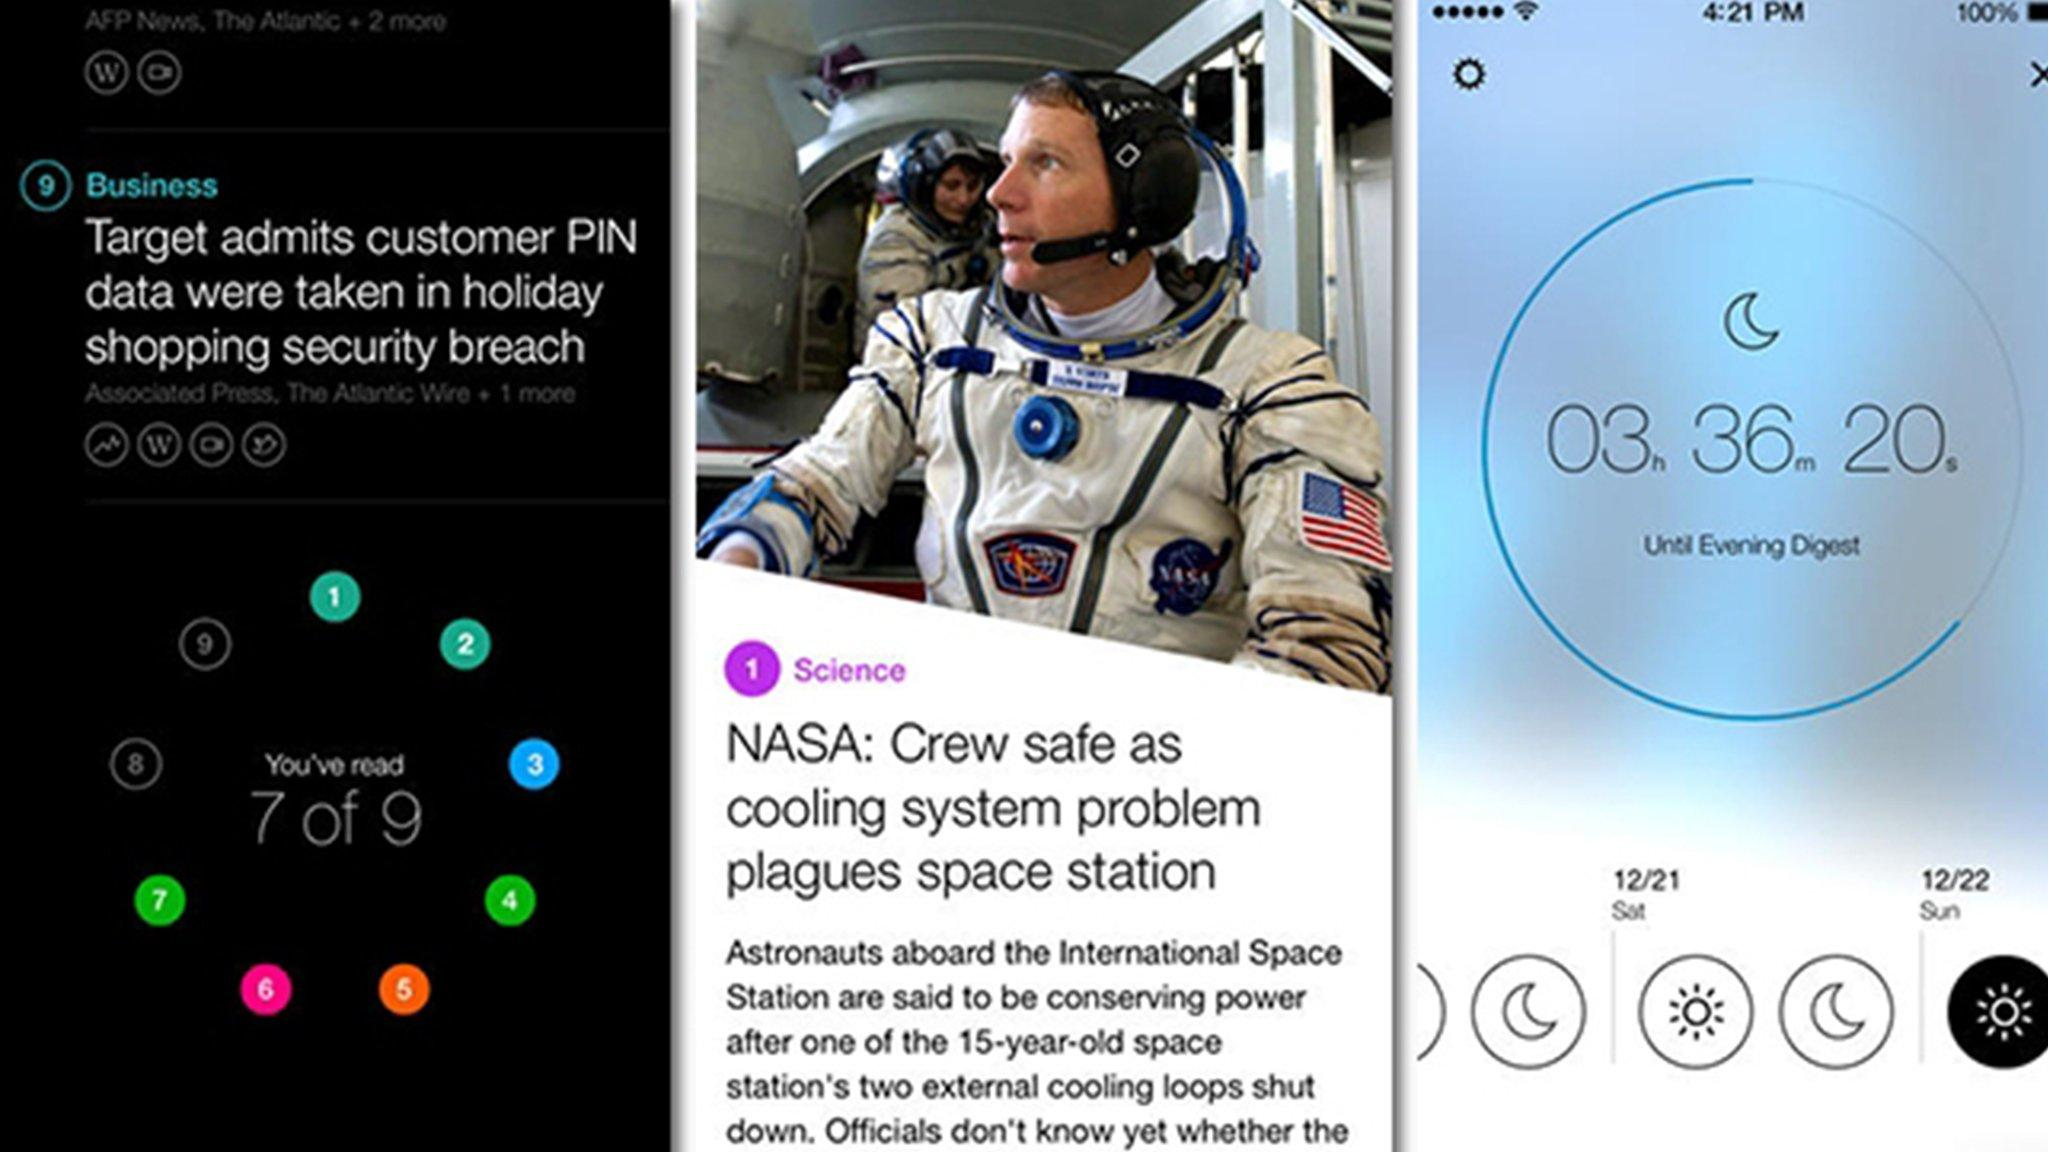 Yahoo launches news aggregation and summary app 'News Digest'. I